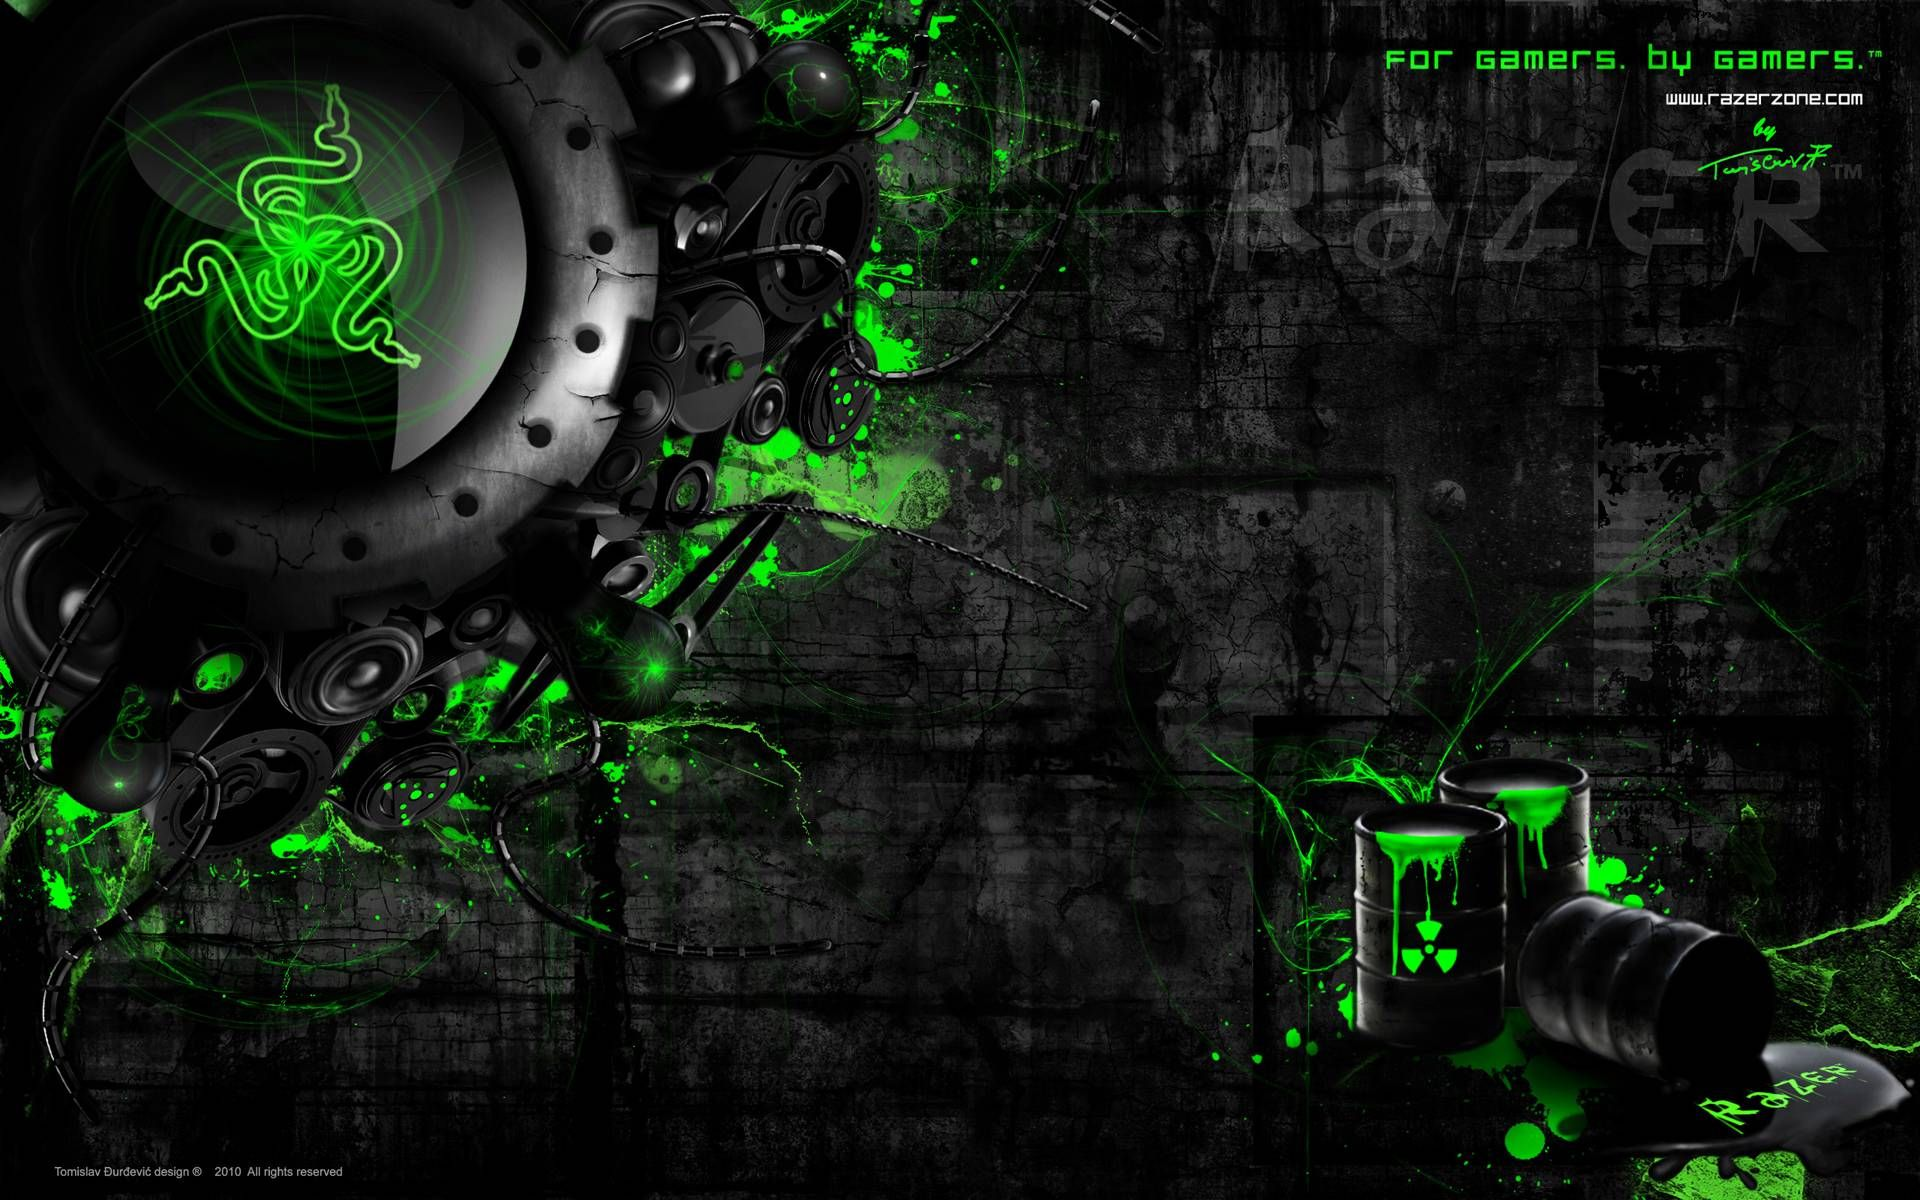 Razer Wallpaper 1920 1080 Razor Backgrounds 48 Wallpapers